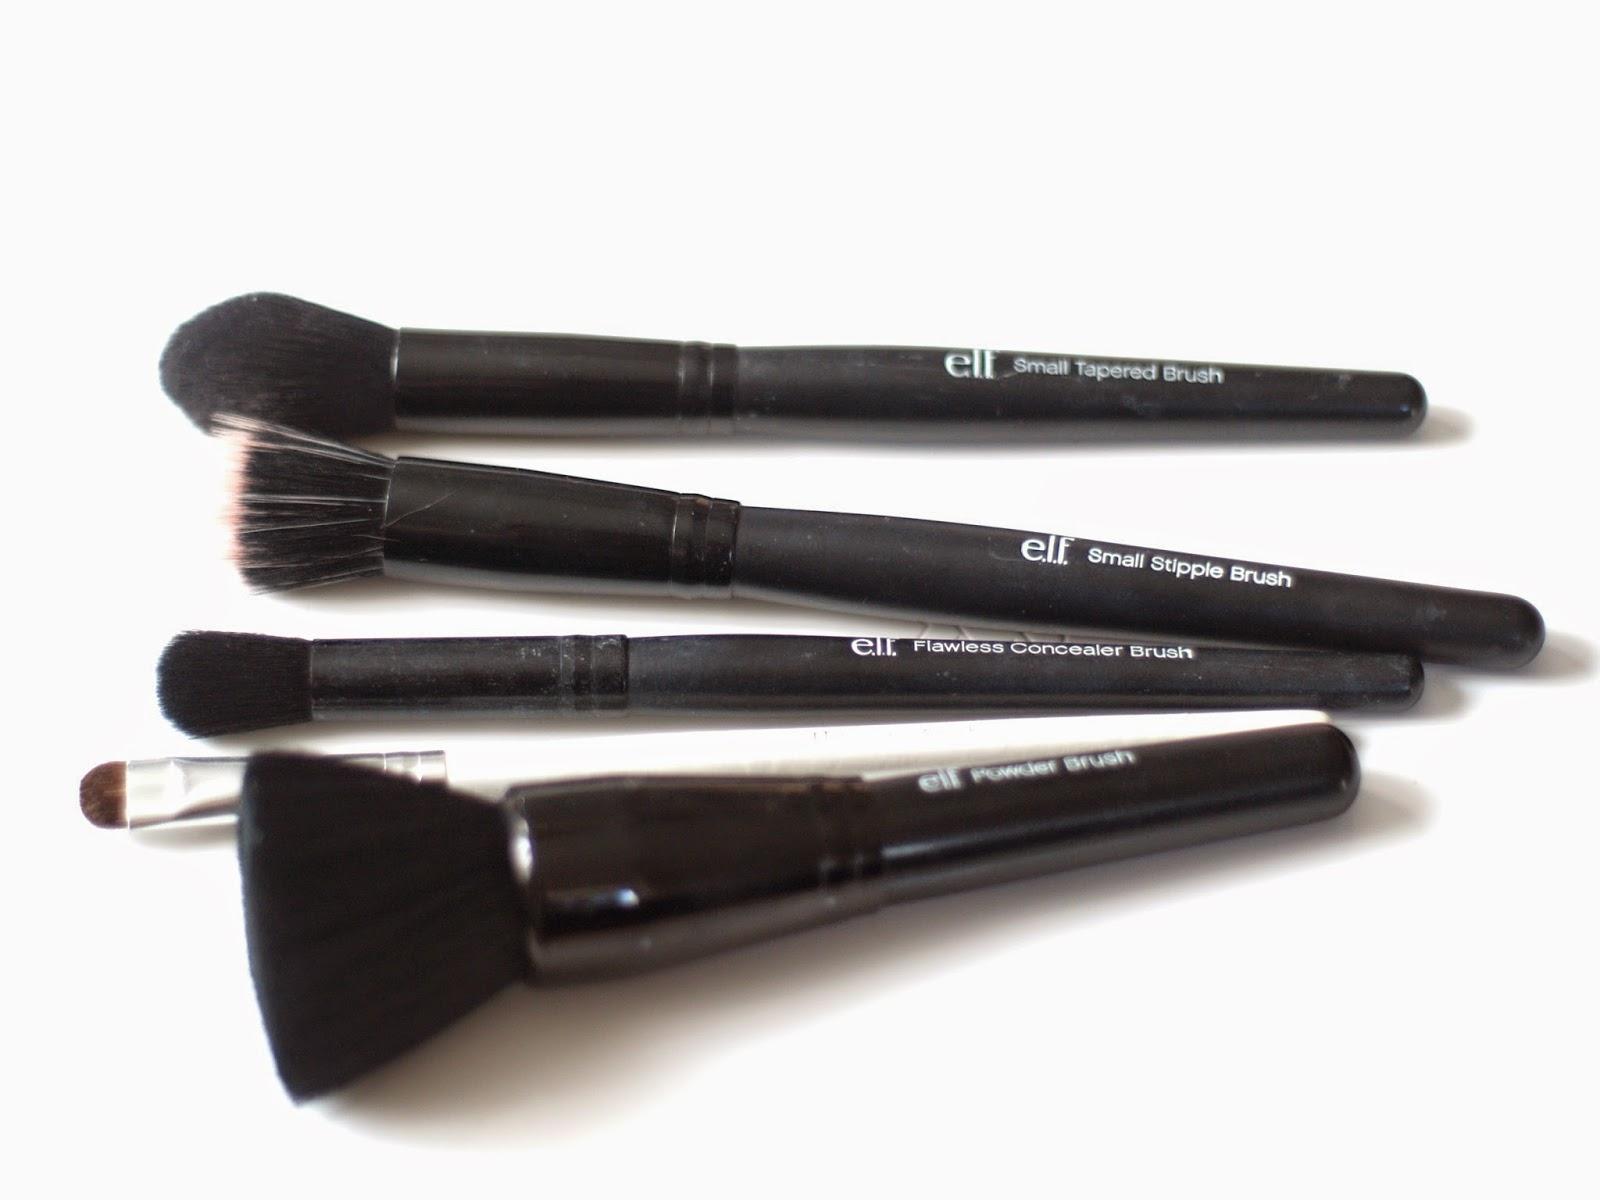 5 E.L.F. Brushes That You Need In Your Life